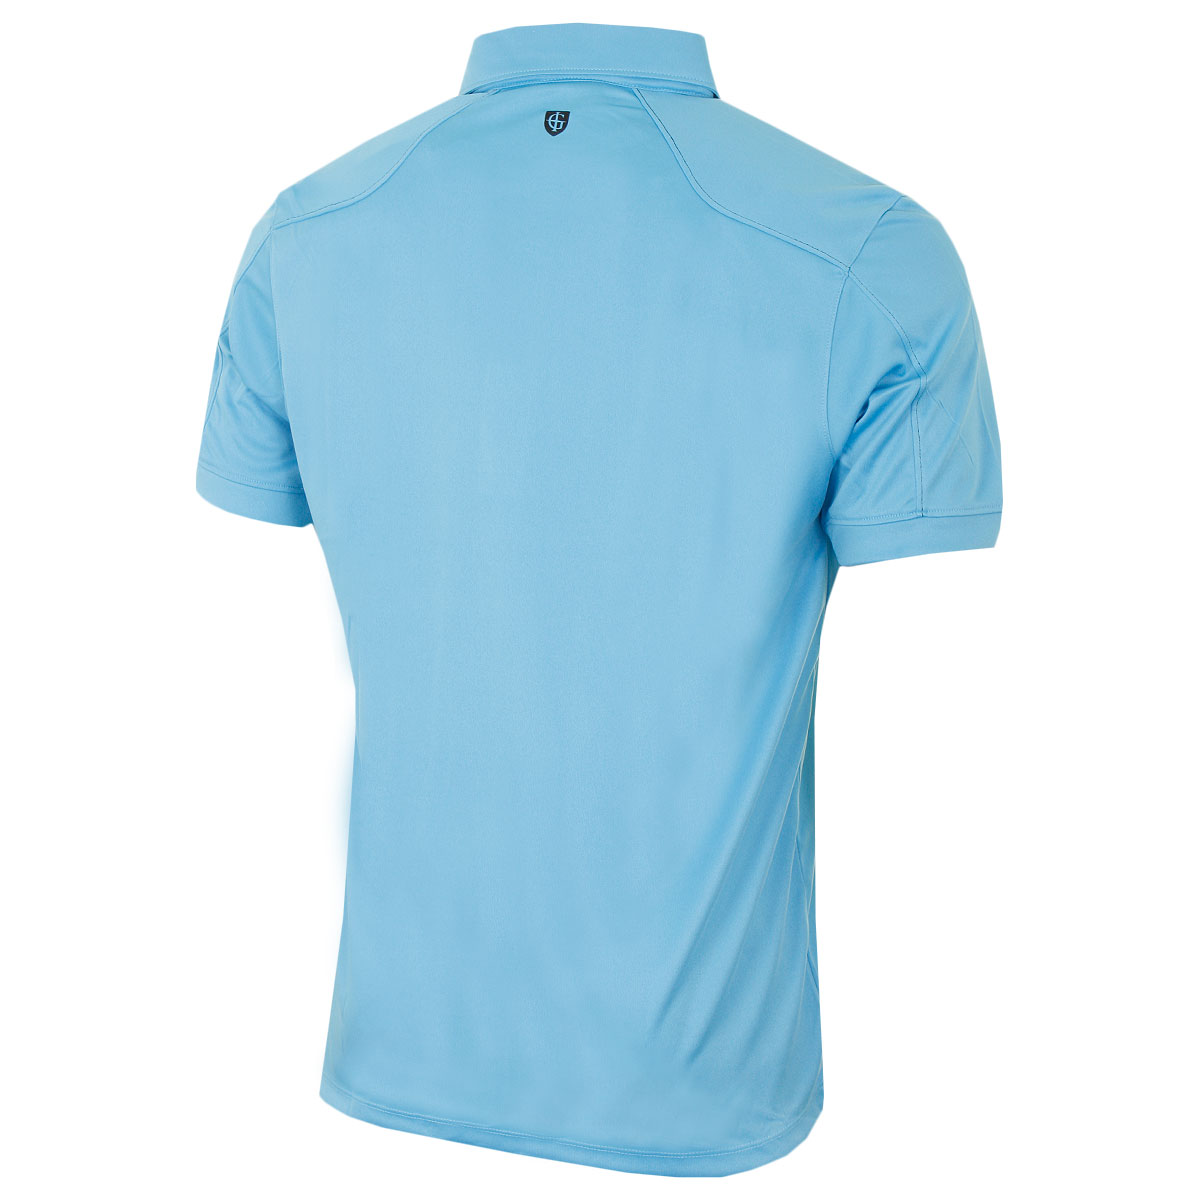 Island-Green-Mens-Golf-IGTS1648-Performance-Coolpass-Polo-Shirt-44-OFF-RRP thumbnail 21